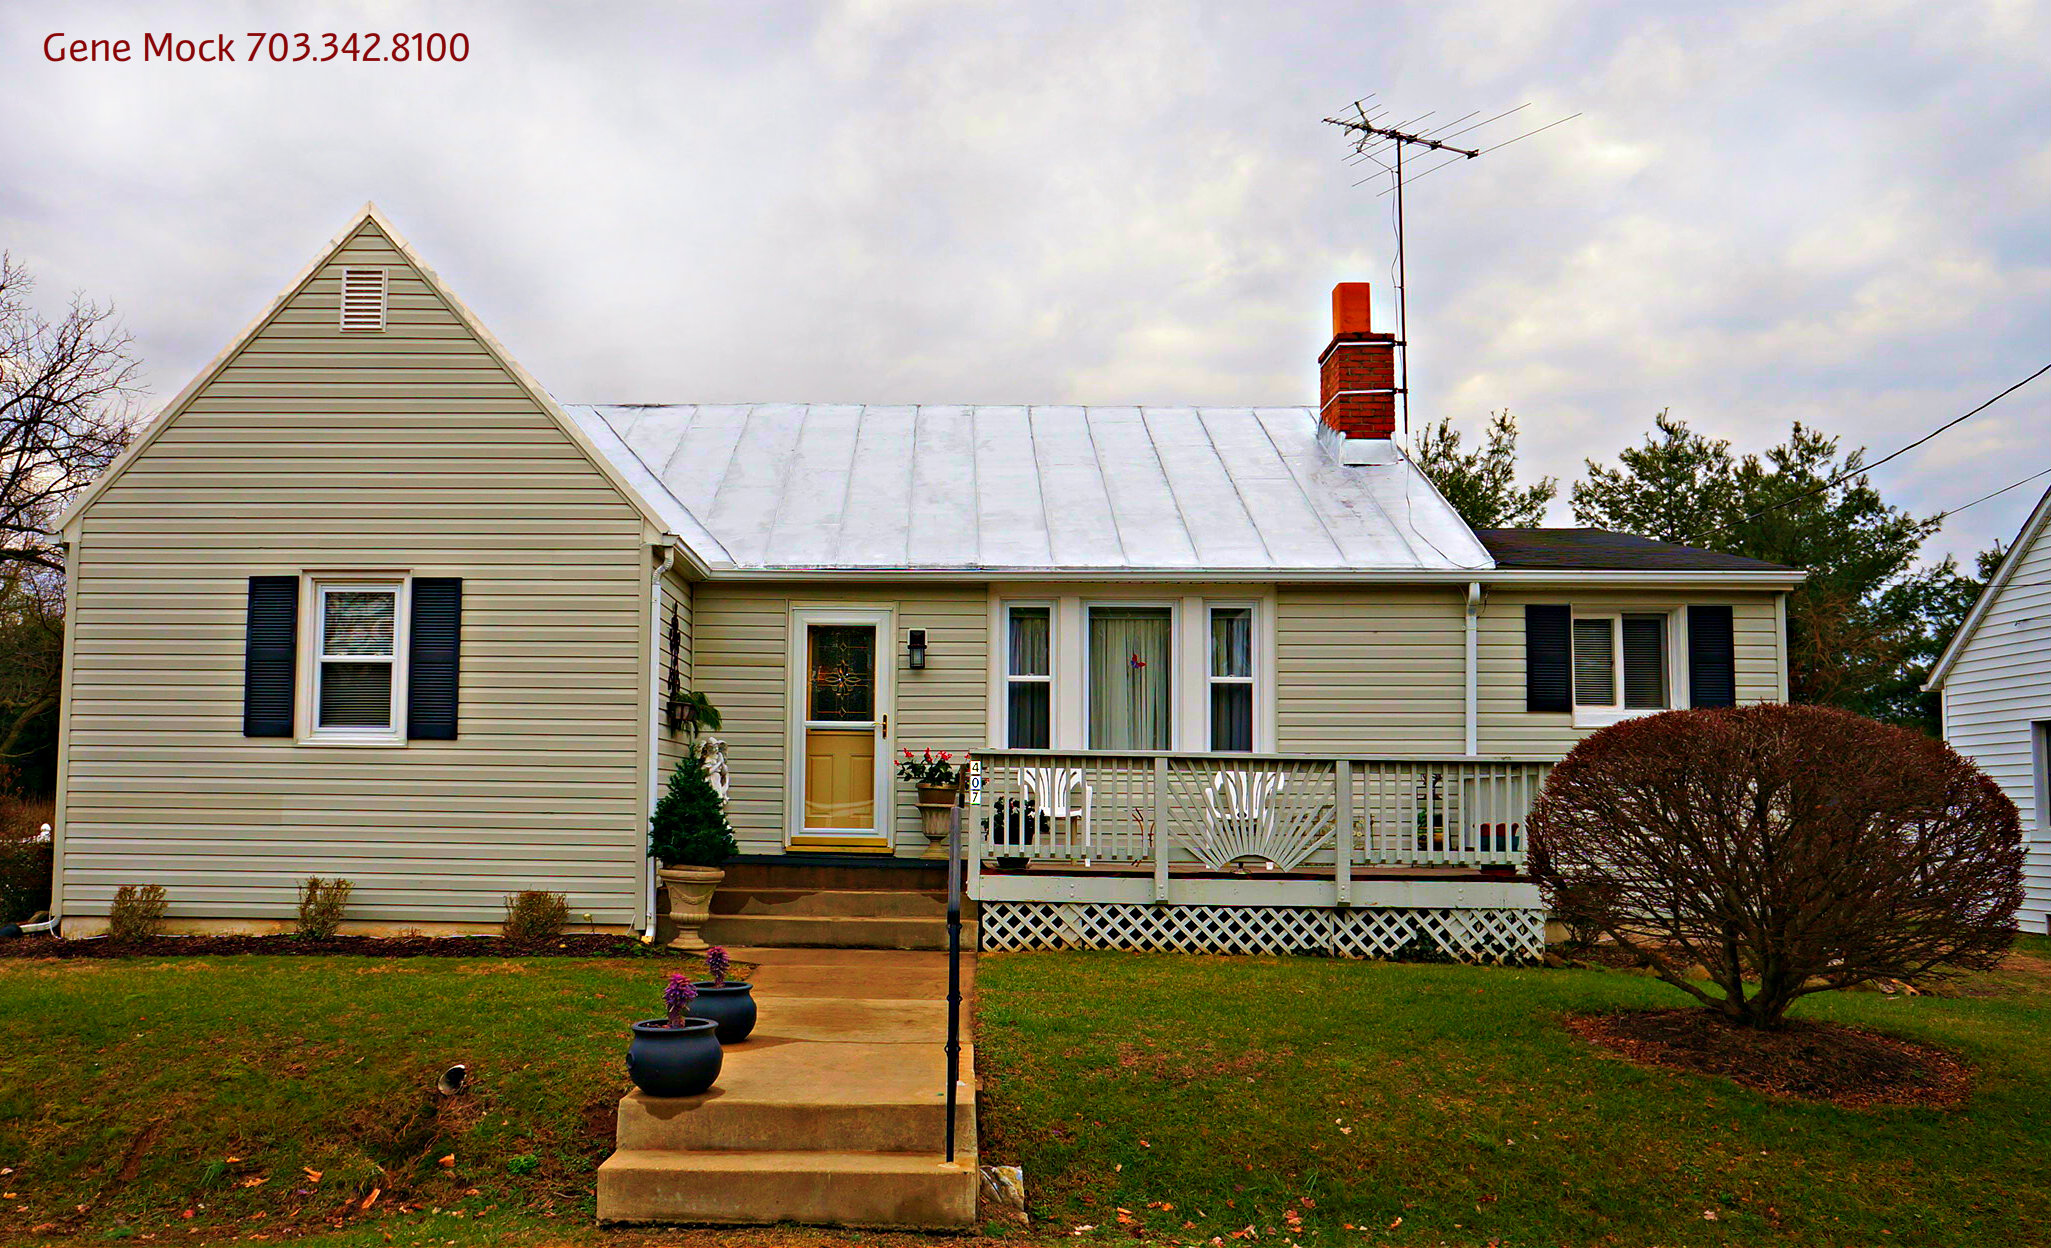 Home in middleburg va for sale renovated updated bungalow Homes with finished basements for sale